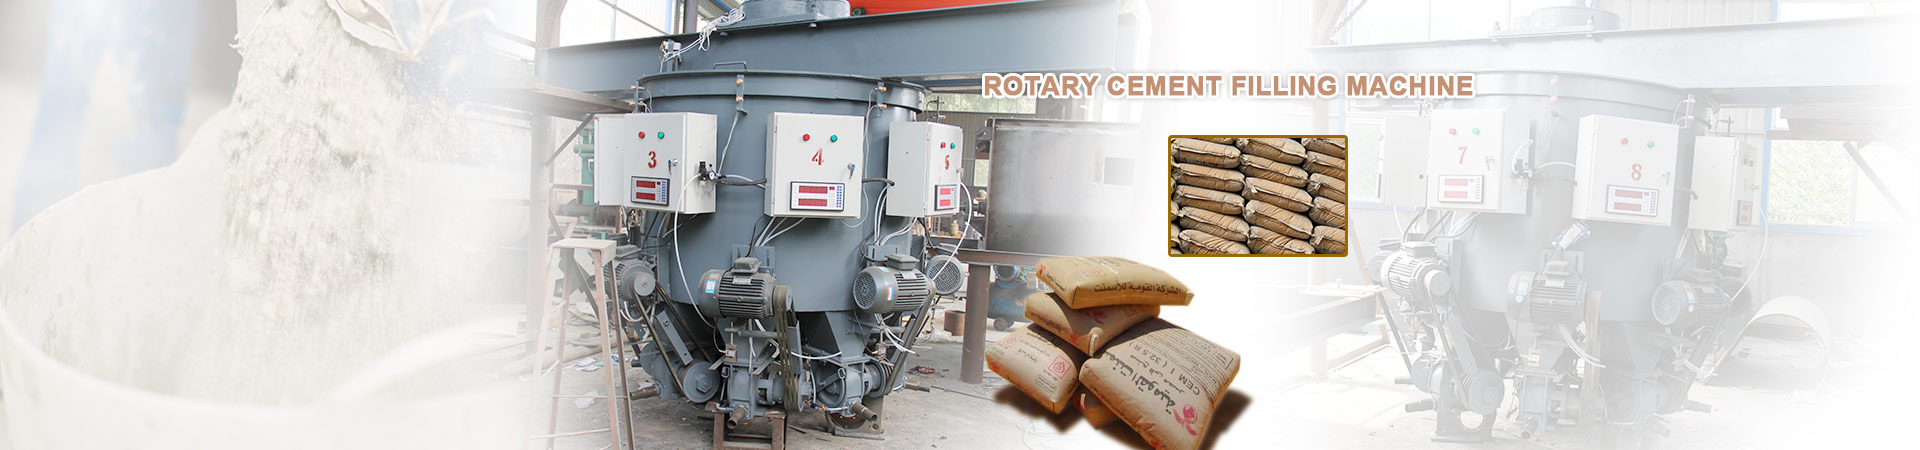 Rotary Cement Filling Machine